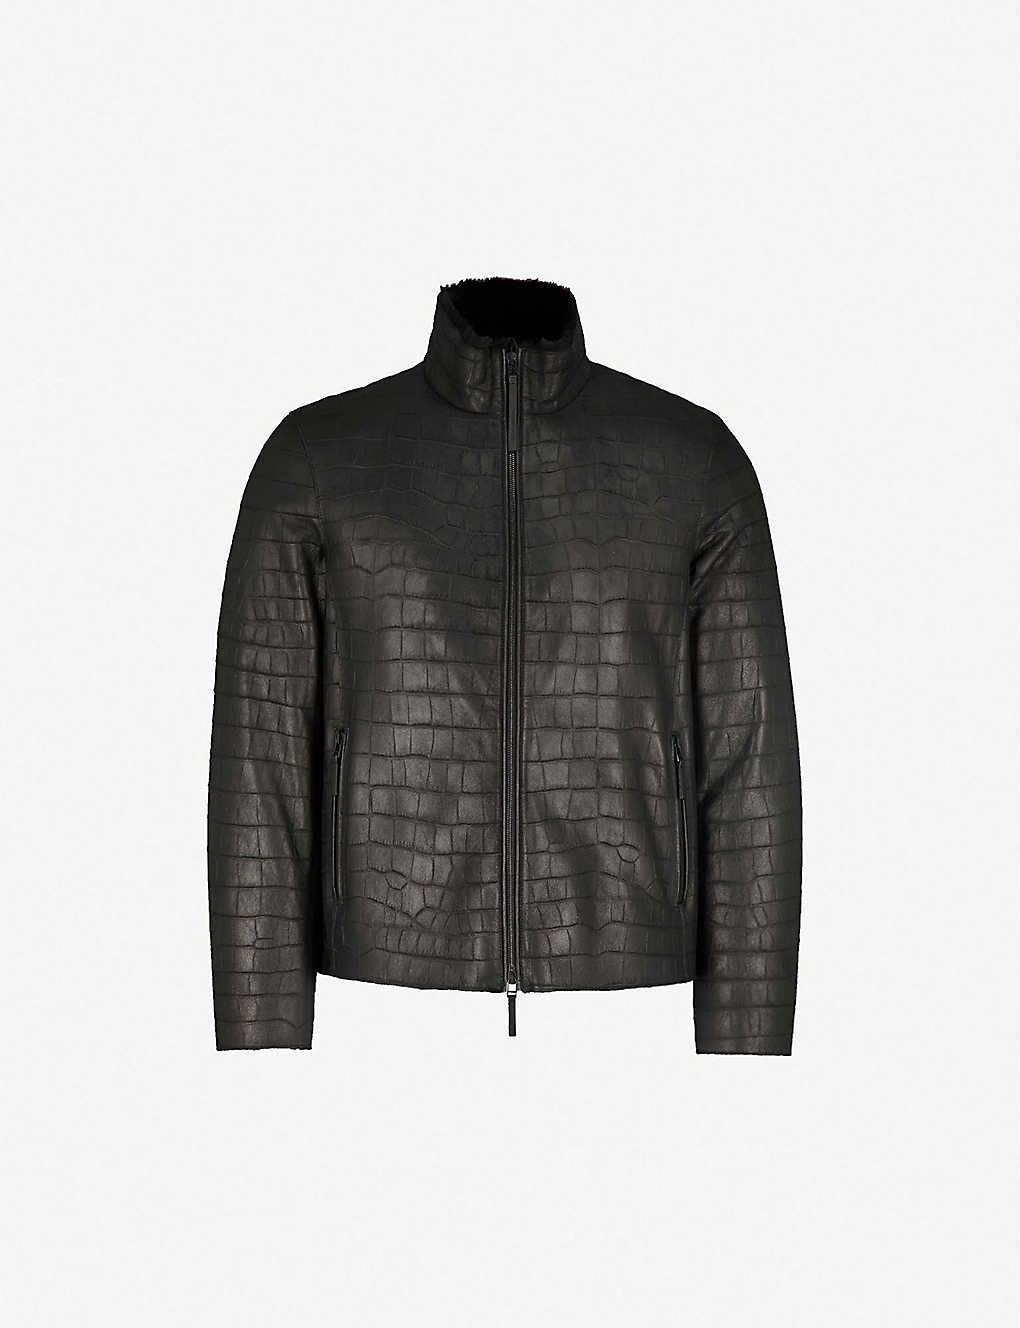 And Armani Shearling Leather Emporio Croc Effect Jacket z7Iqvq